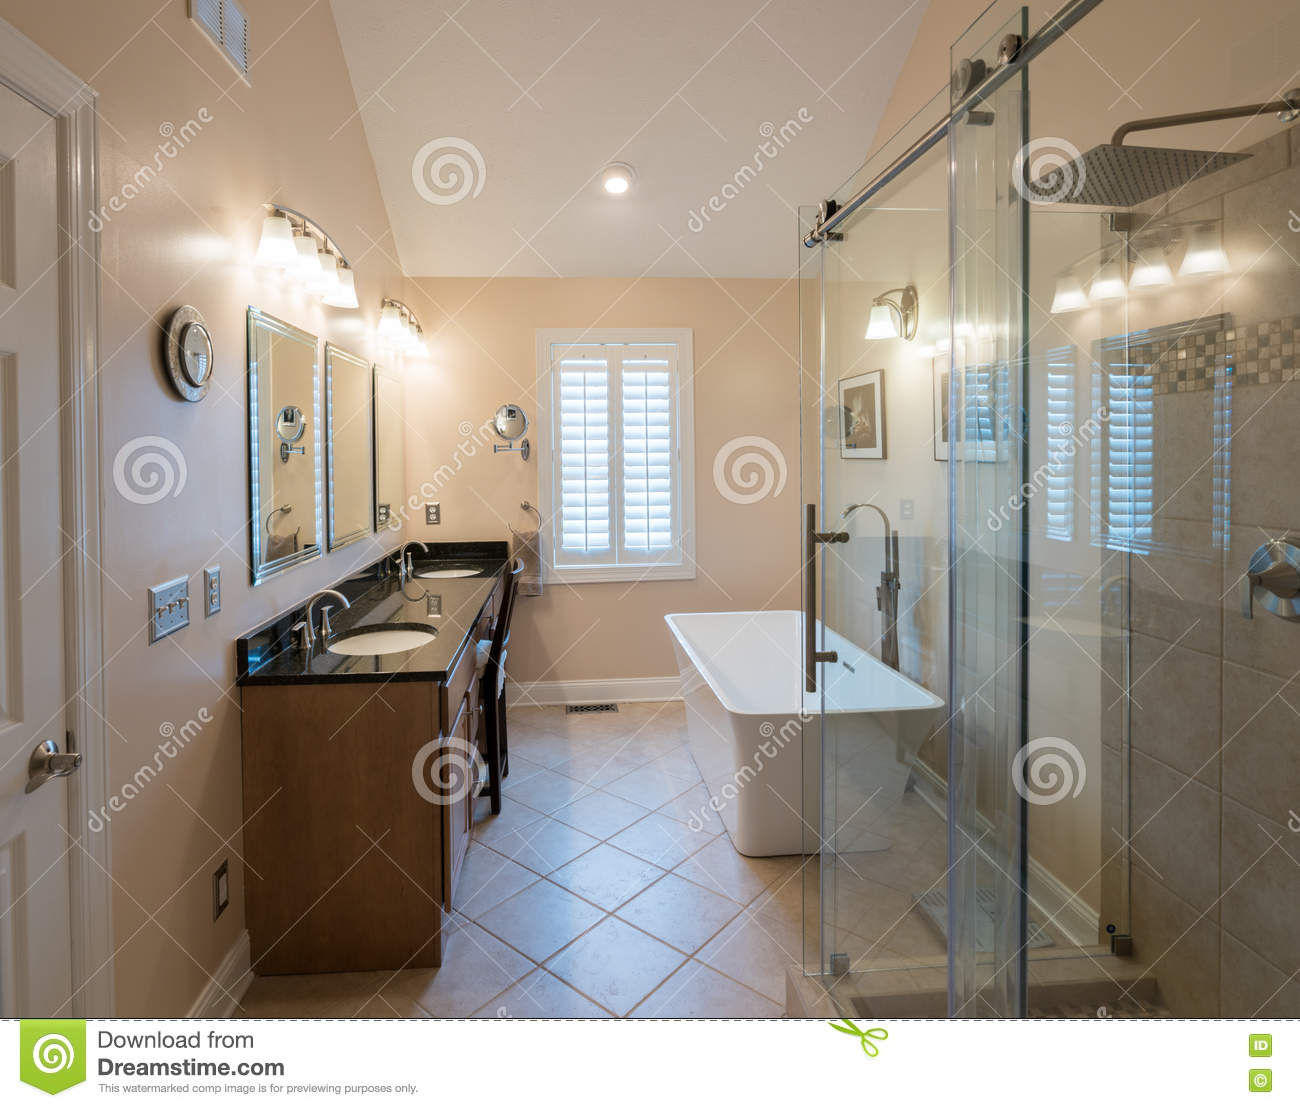 Modern Bathroom With Freestanding Tub And Vanity Stock Photo - Image ...